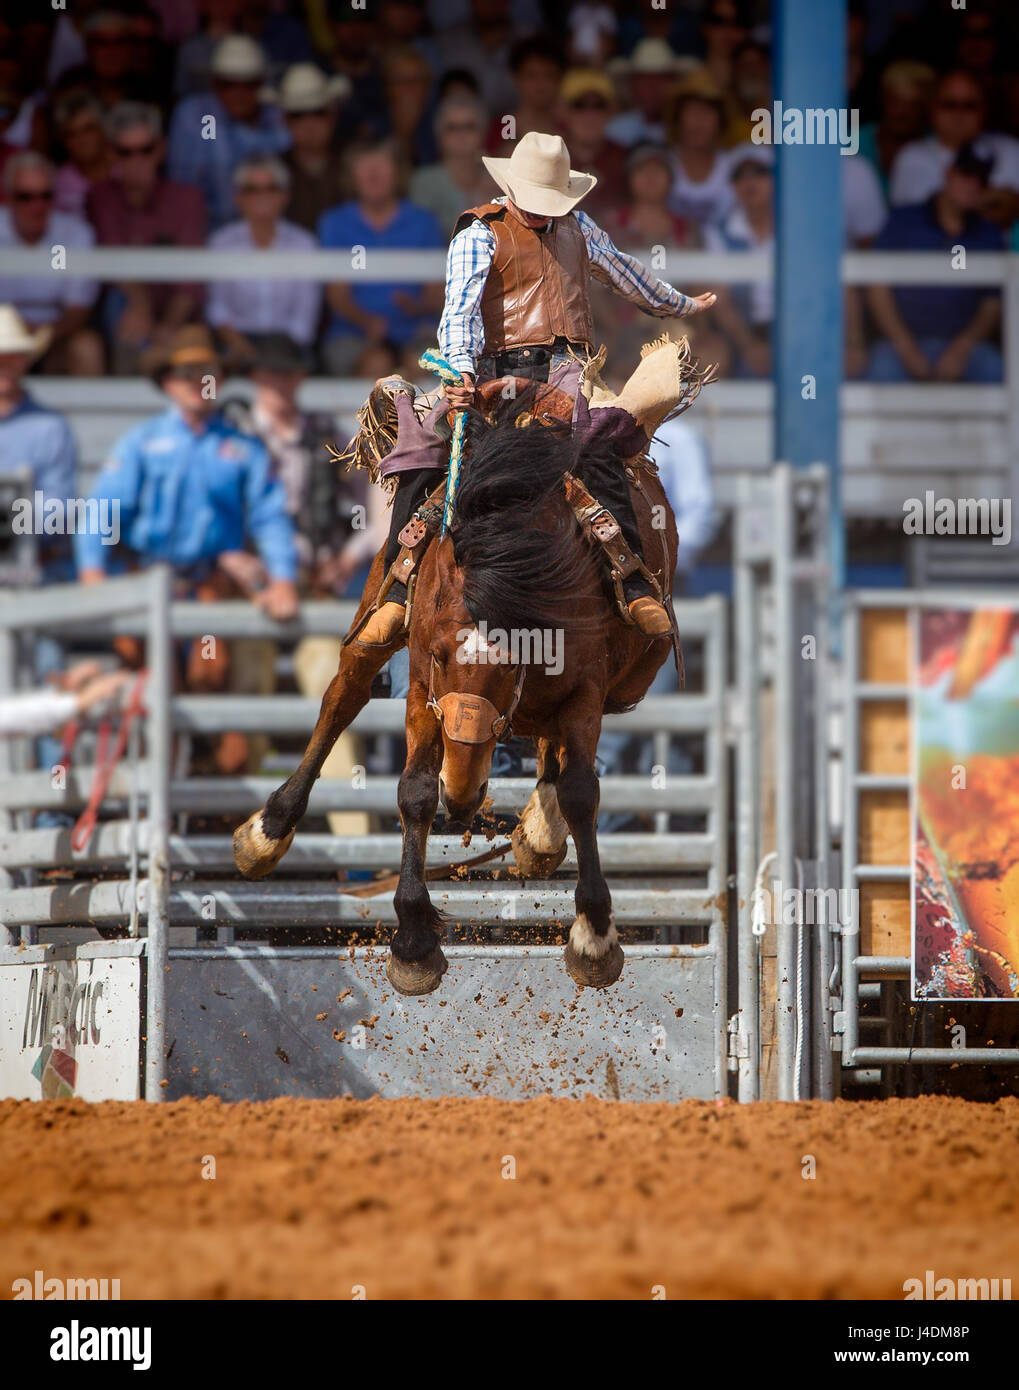 ARCADIA, FLORIDA - MARCH 9-  Horse bucking contests during the famous 84th All-Florida Championship Rodeo on March Stock Photo